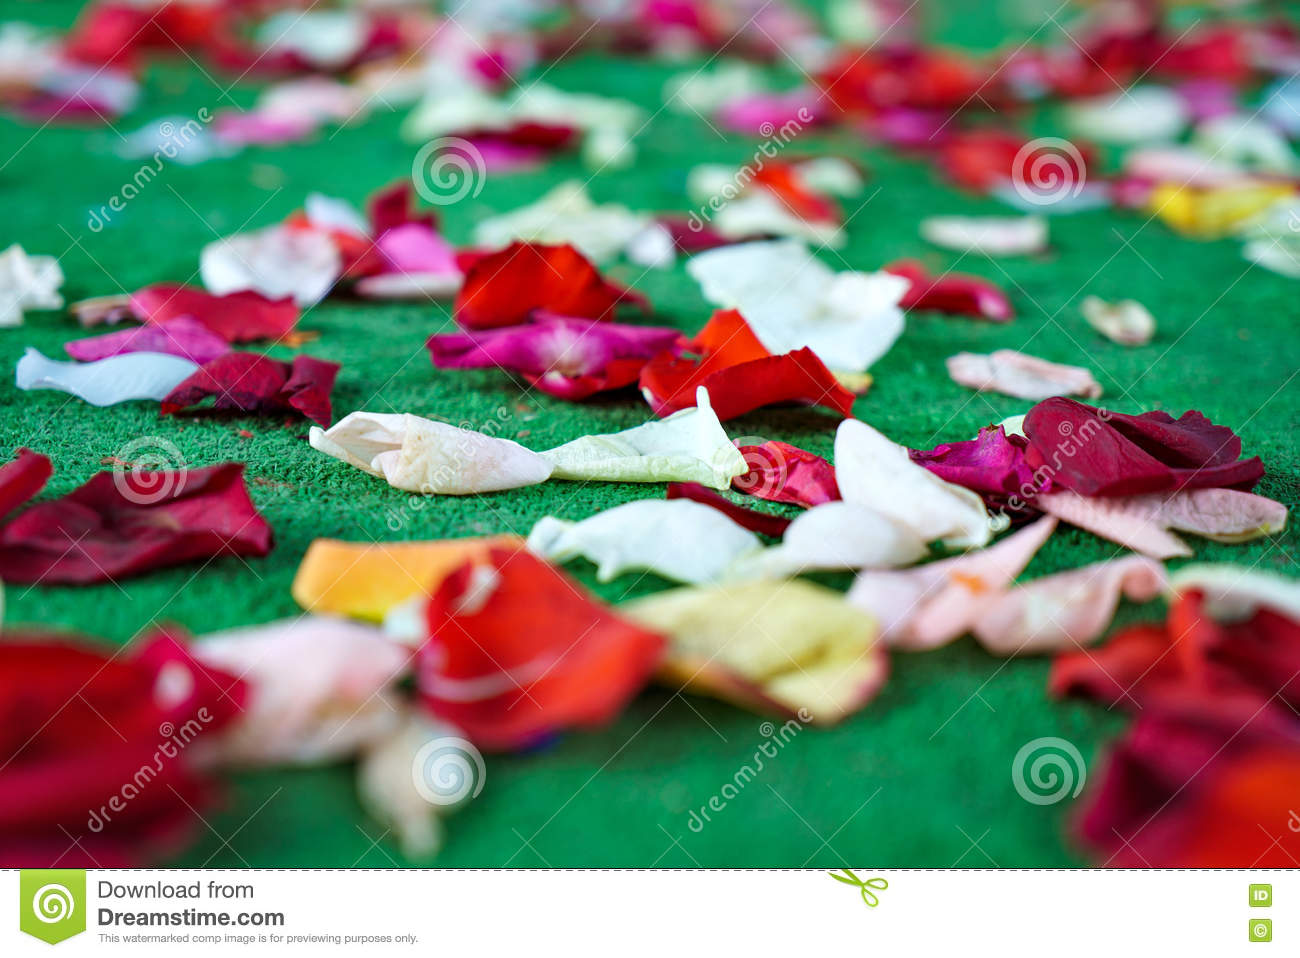 Red White Rose Petals Scattered On Green Carpet Stock Photo Image